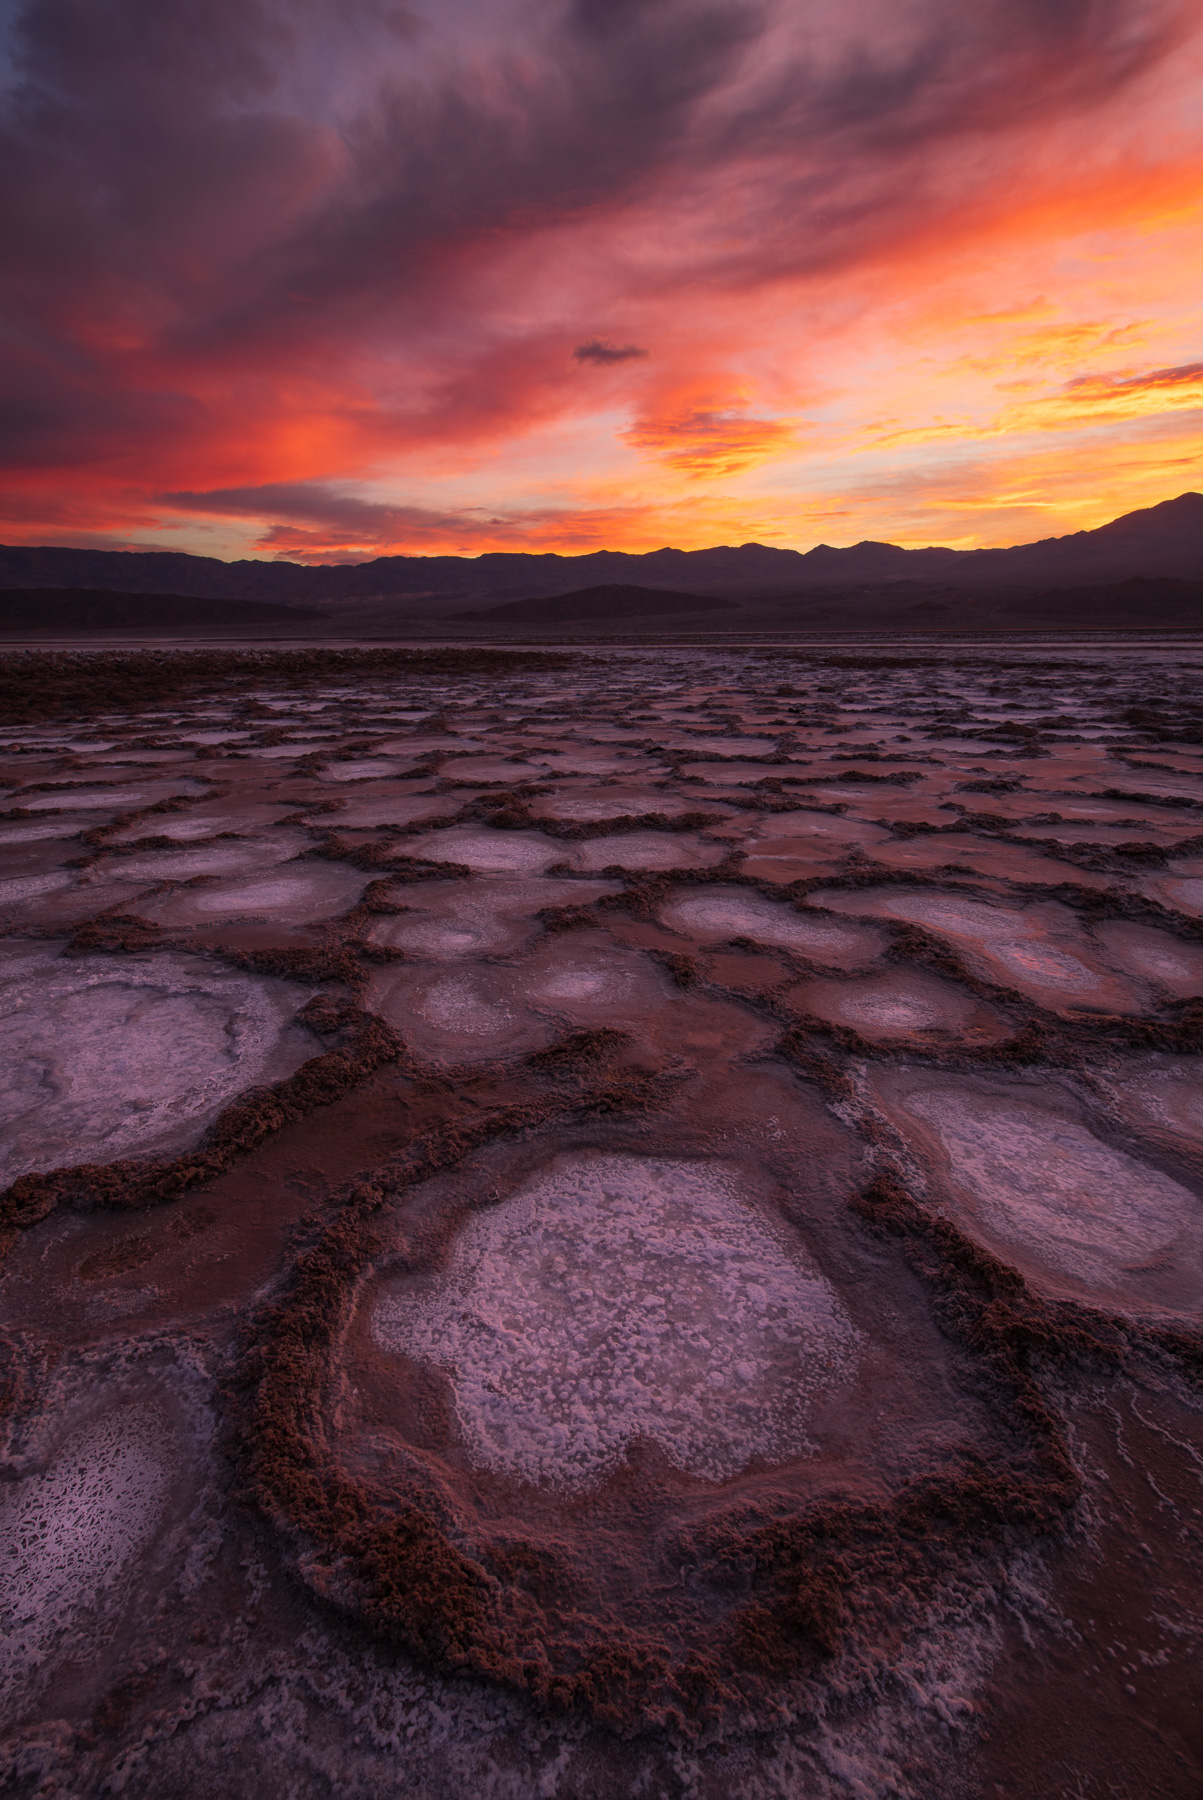 Salt formations at sunrise from Cottonball Basin, Death Valley National Park, California